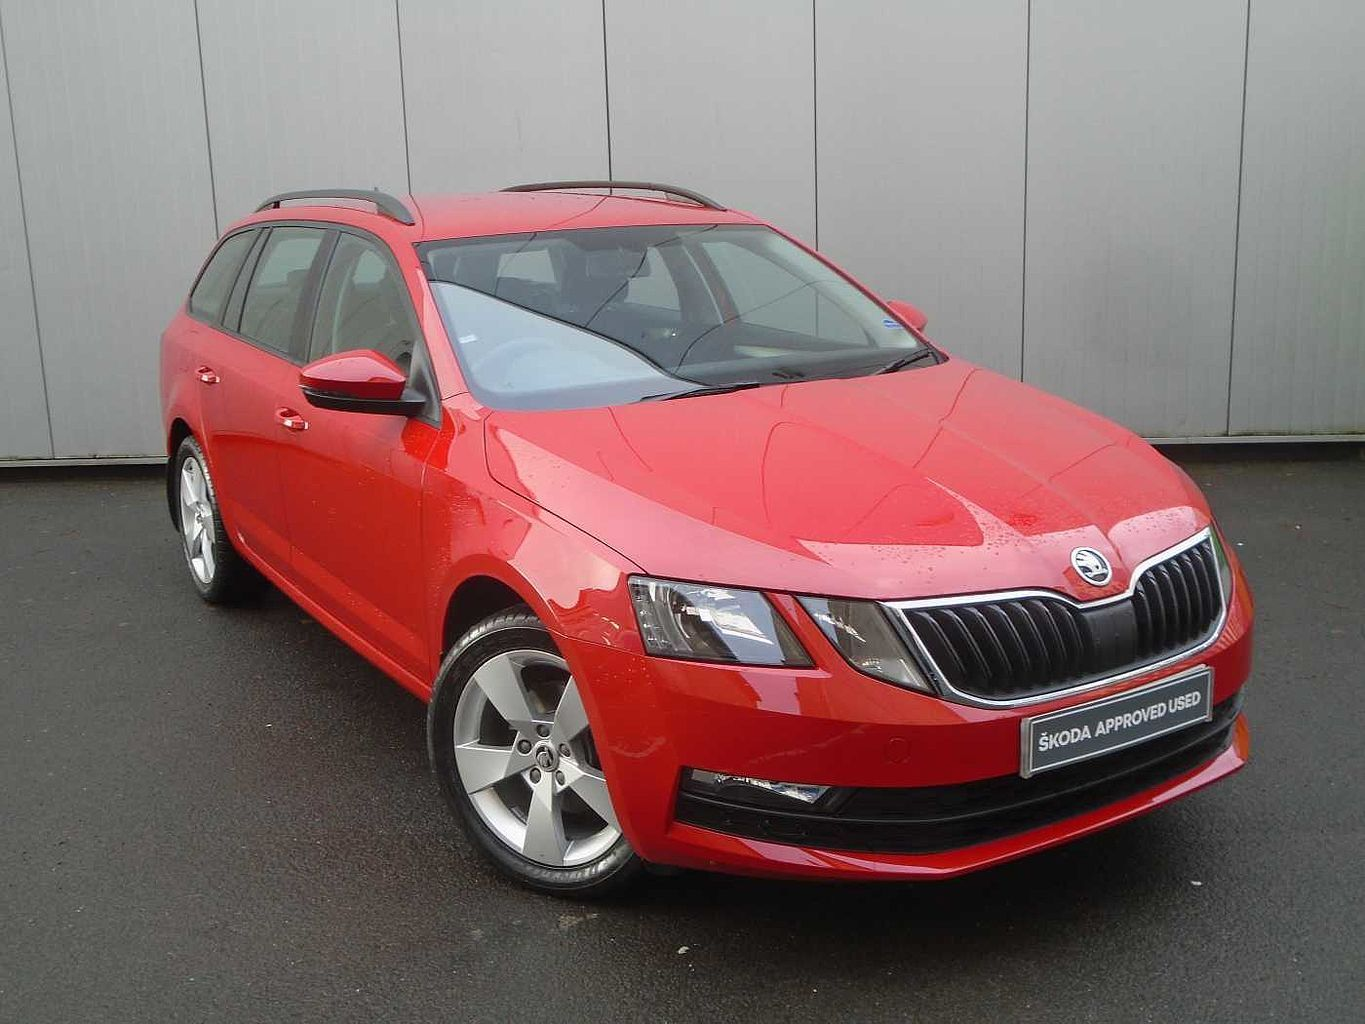 ŠKODA Octavia Estate 1.5 TSI (150ps) SE Drive ACT DSG